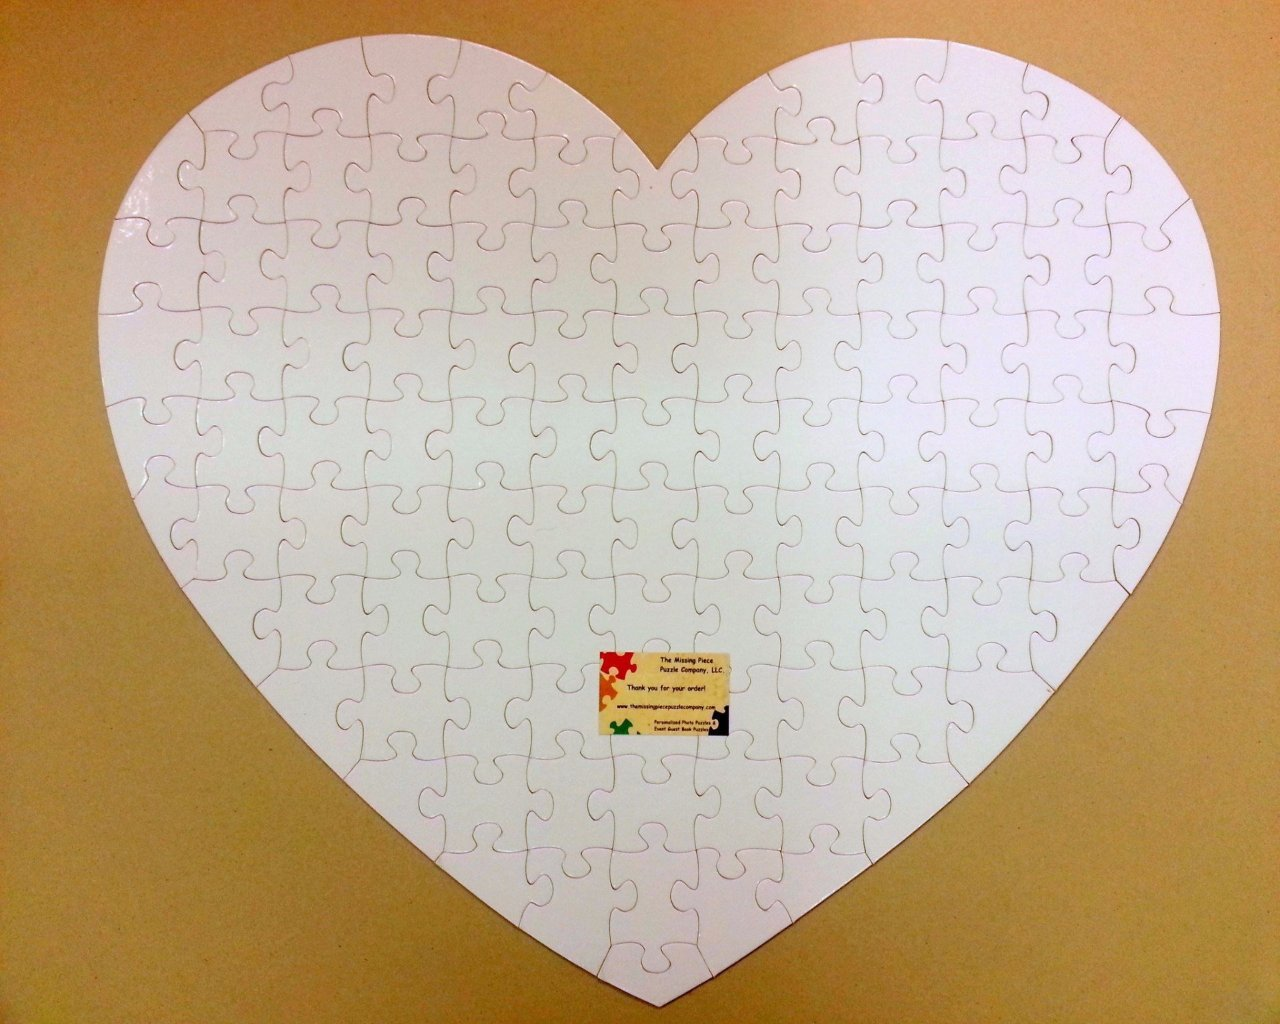 Giant Heart Shaped Guest Book Puzzle With White Puzzle Pieces